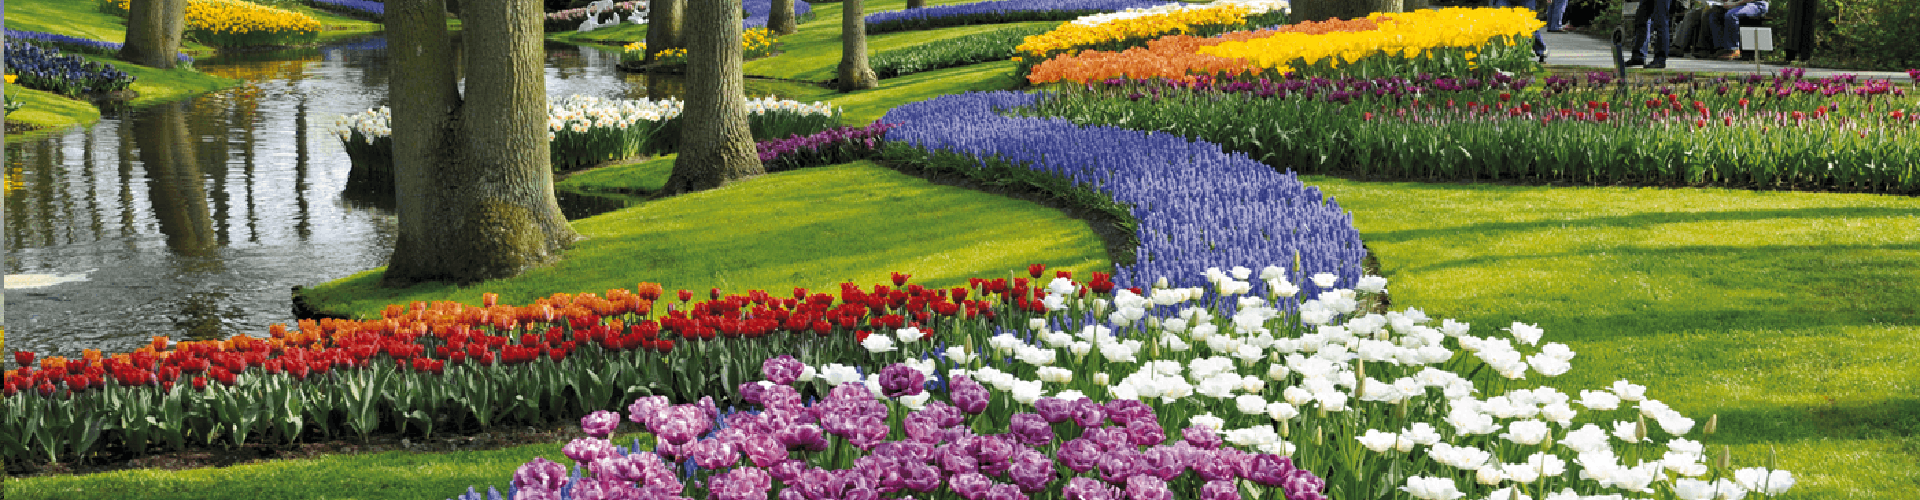 Keukenhof The Netherlands 2021 Travel to see the most spectacular garden in Europe 2021